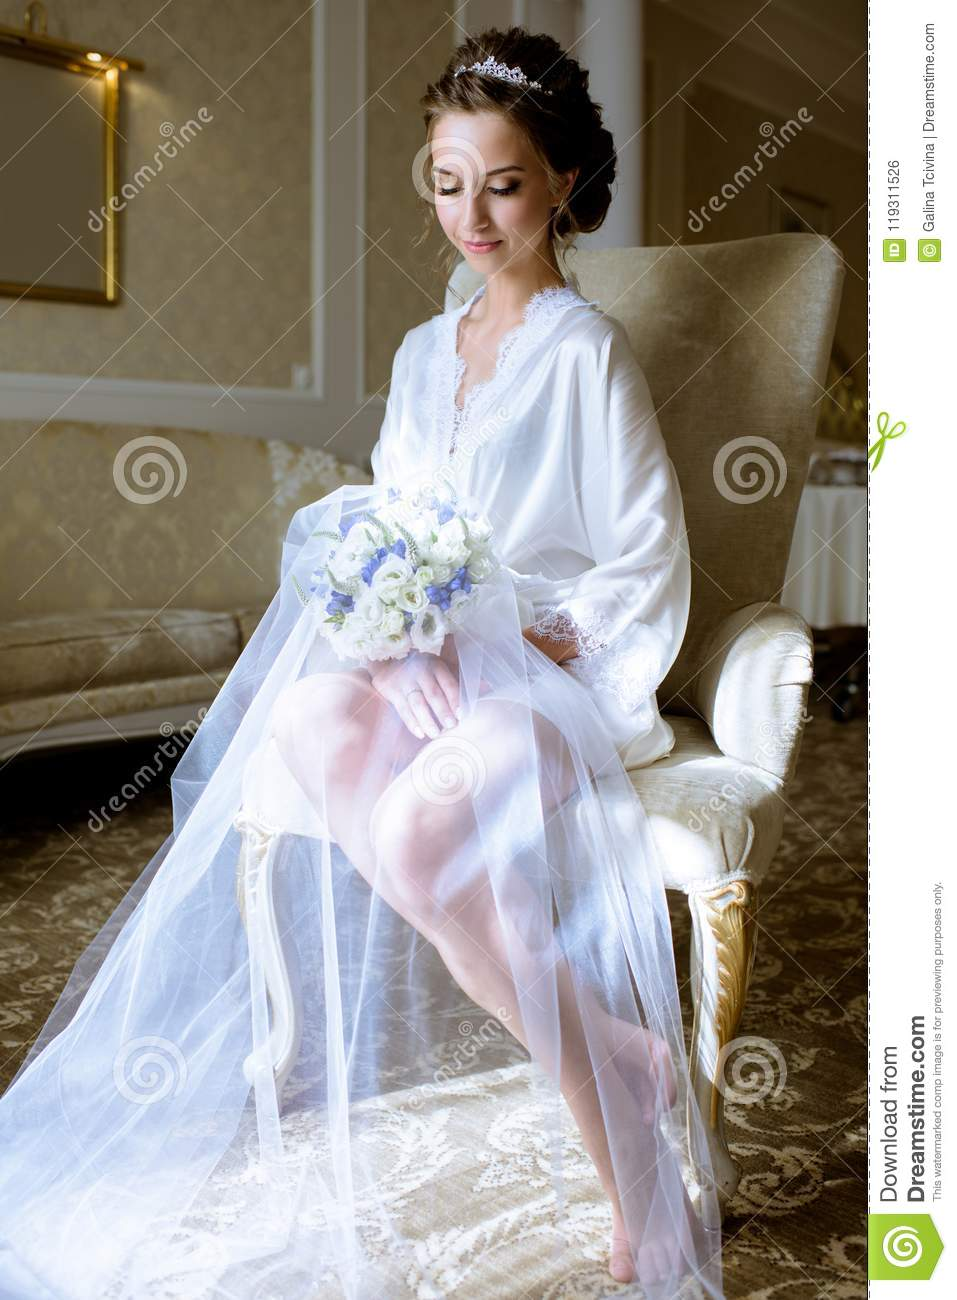 Beauty Bride In Dressing Gown With Bouquet Indoors Stock Photo ...